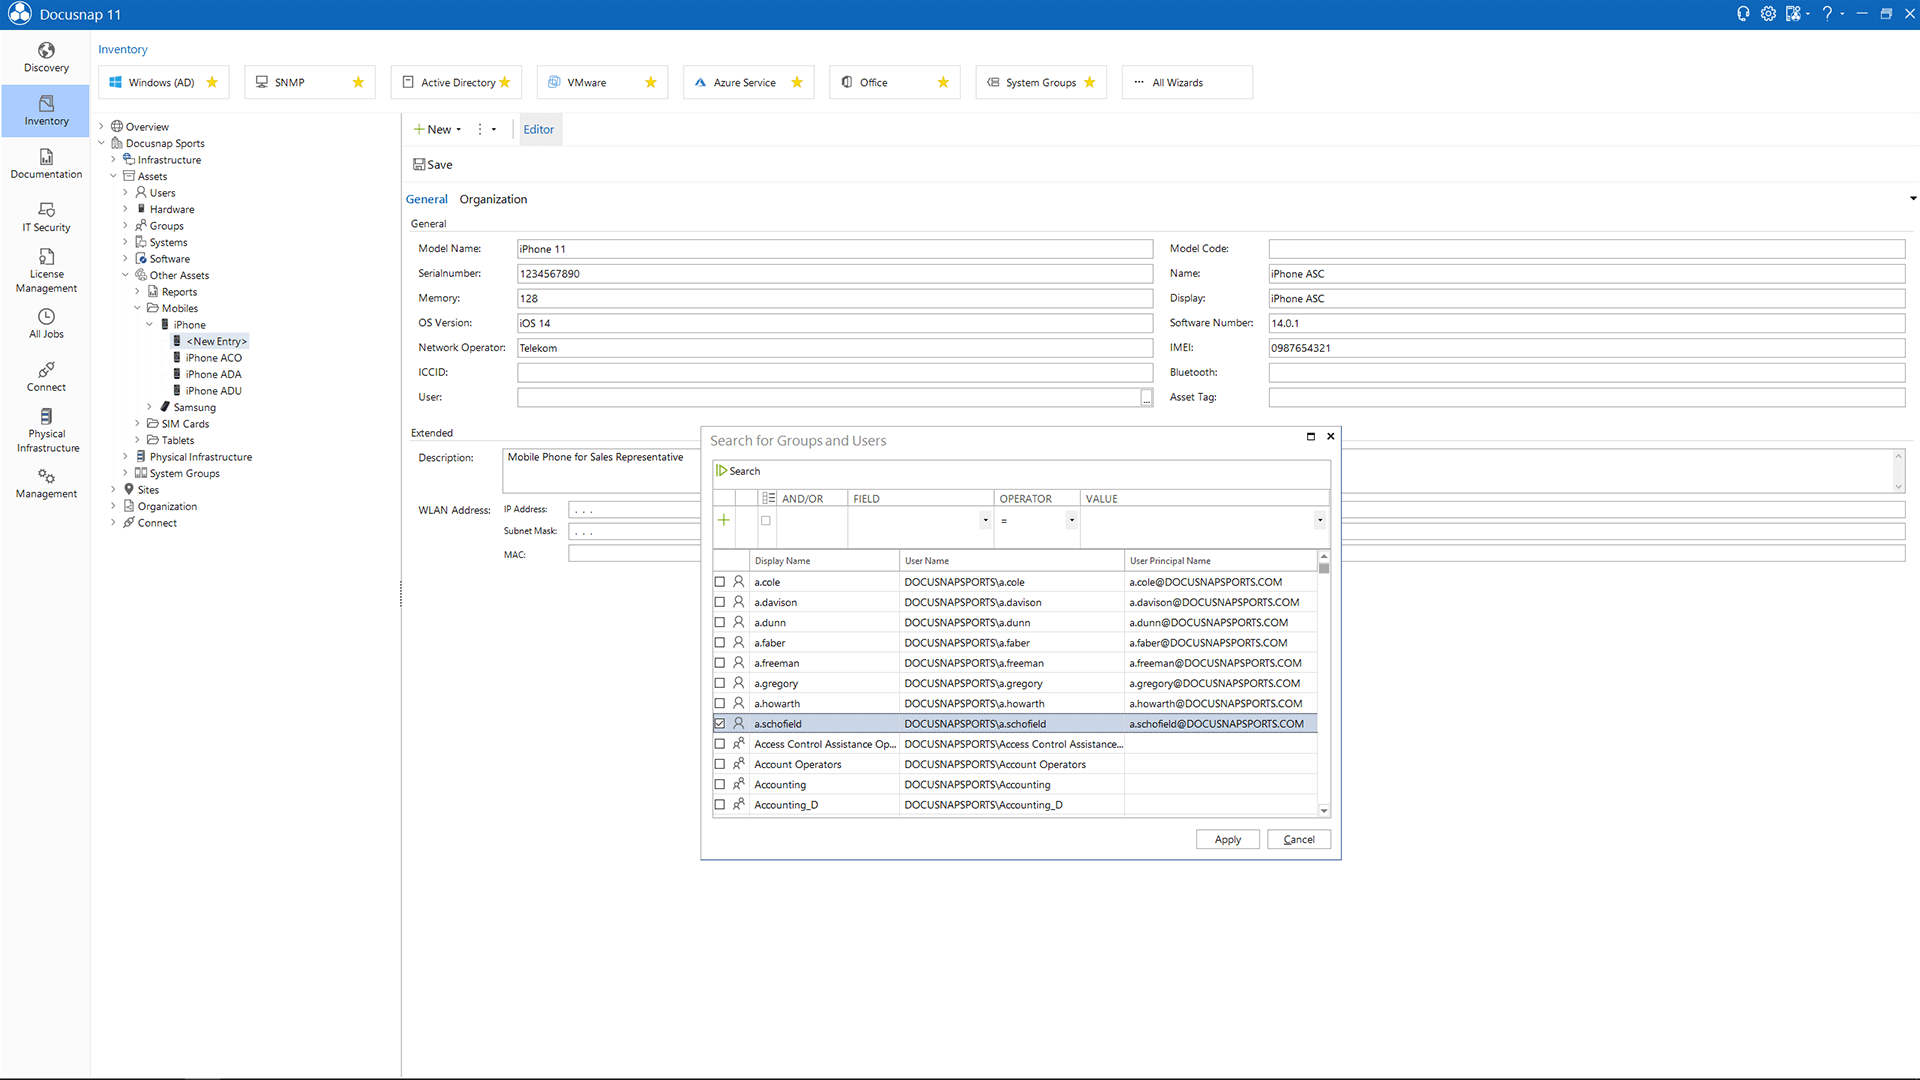 Screenshot: Documenting systems using IT Assets